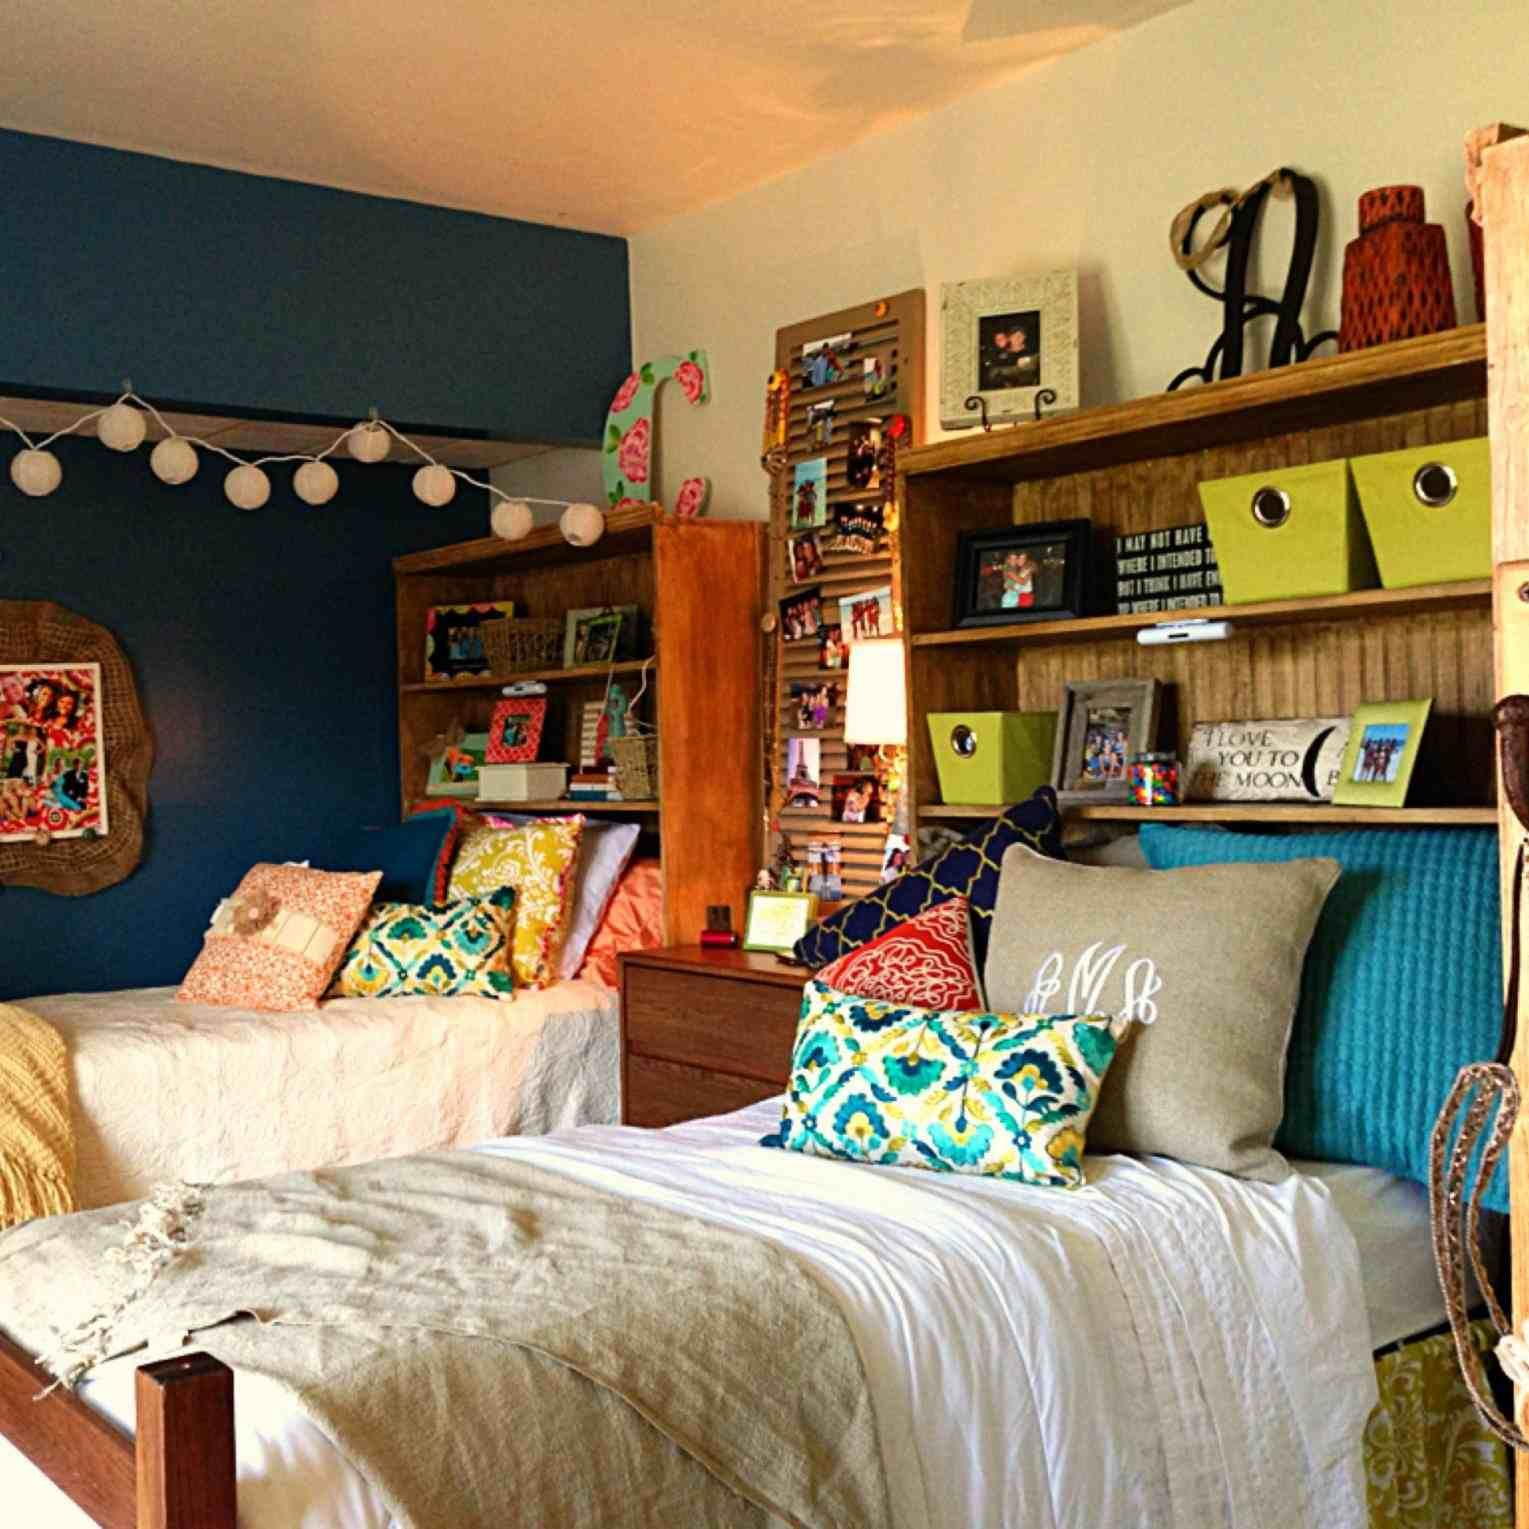 This Cool Things For Bedroom   Full Size Of Bedrooms:cool Dorm Room Stuff  College Student Room Ideas College House Decor . Full Size Of Bedroom:cool  Things ...